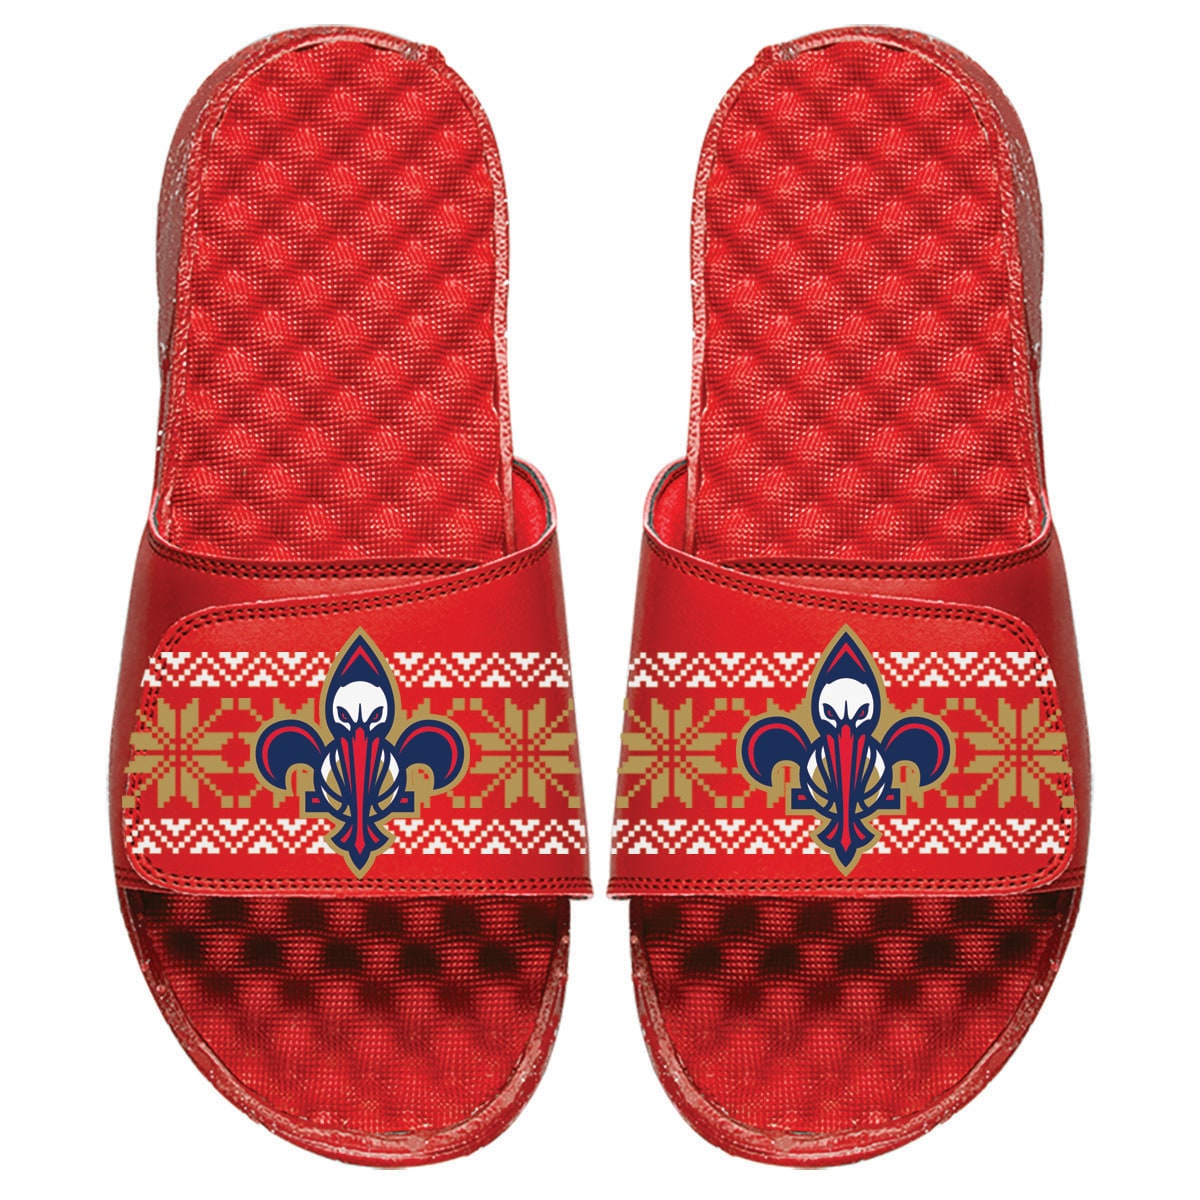 New Orleans Pelicans ISlide Ugly Sweater Slide Sandals - Red